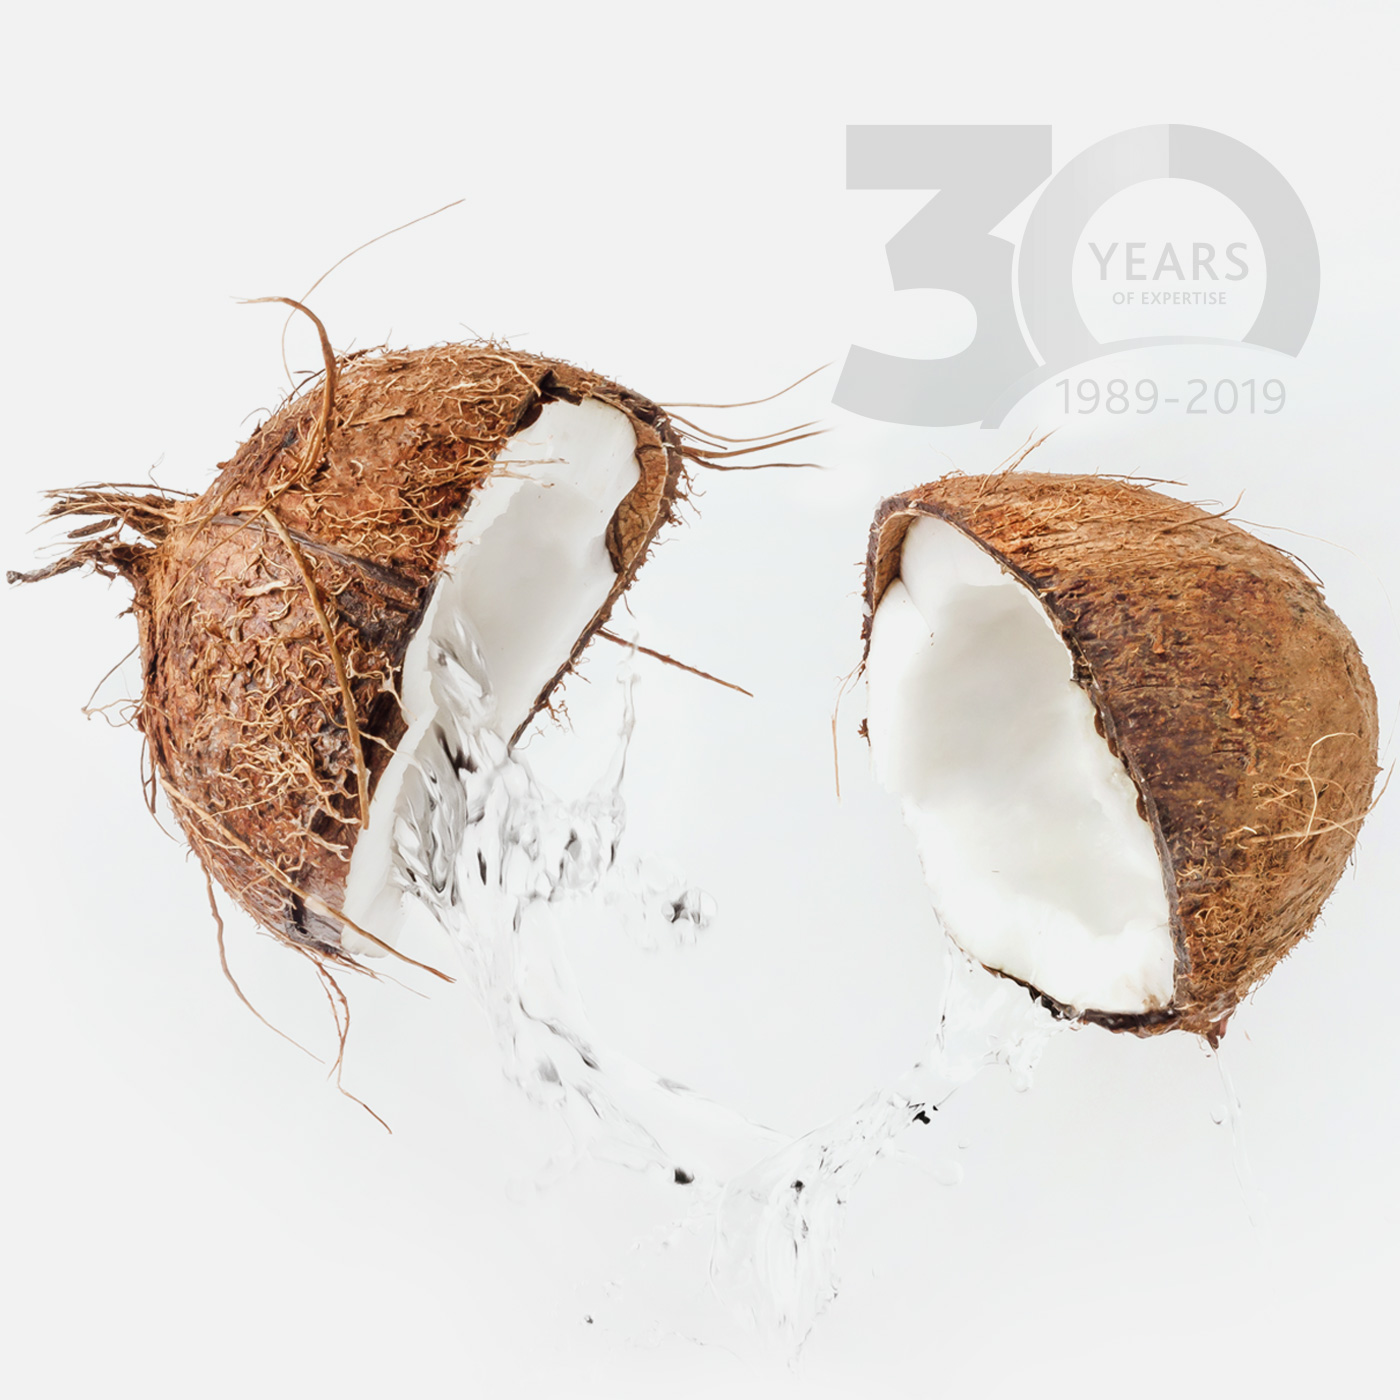 Using coconut, unlock the possibilities for flavours, aromas and sweeteners in animal feed and pet food production